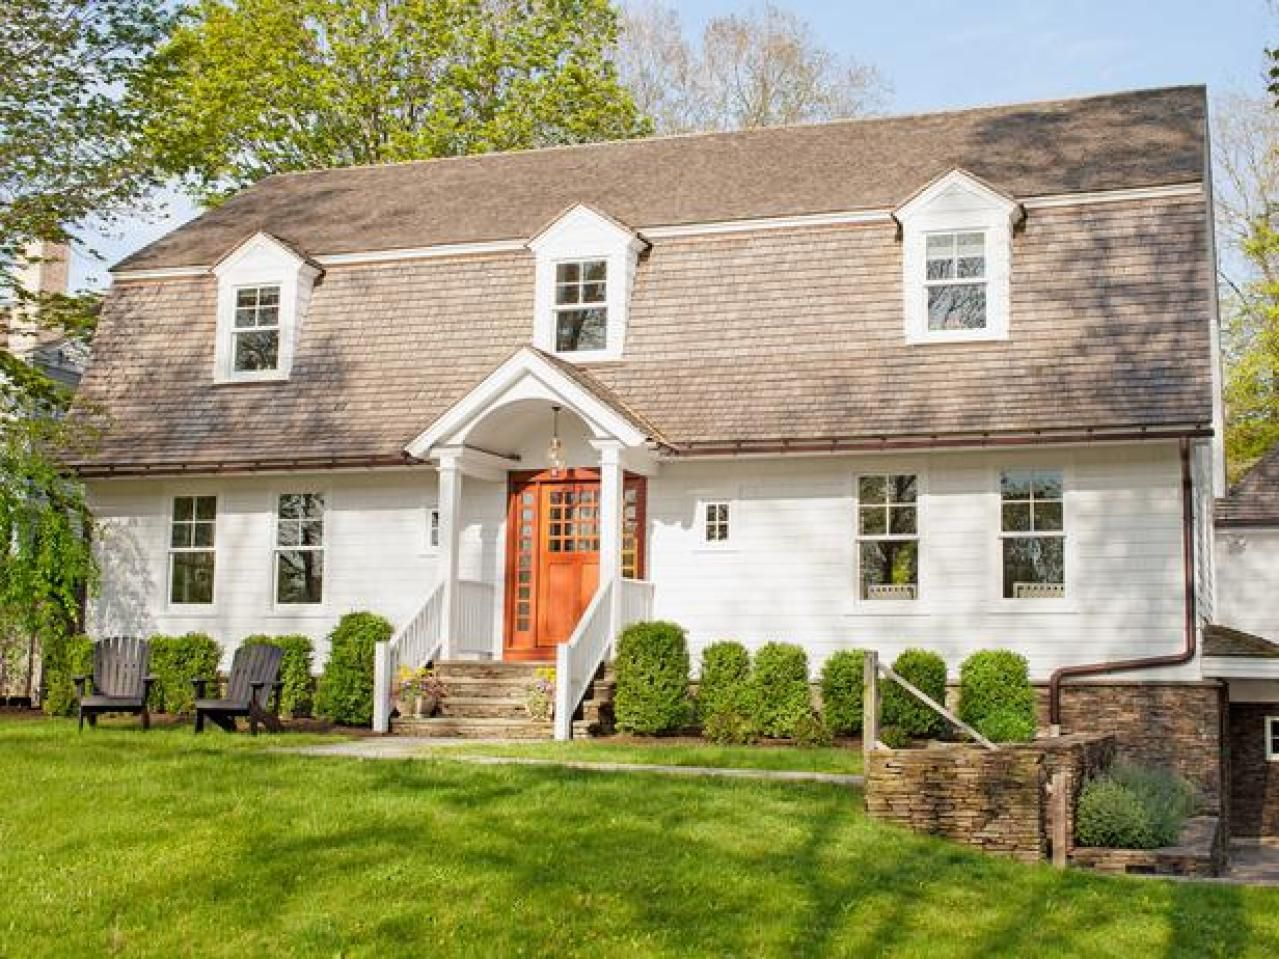 26 popular architectural home styles dutch colonial exterior 26 popular architectural home styles home exterior projects painting curb appeal siding